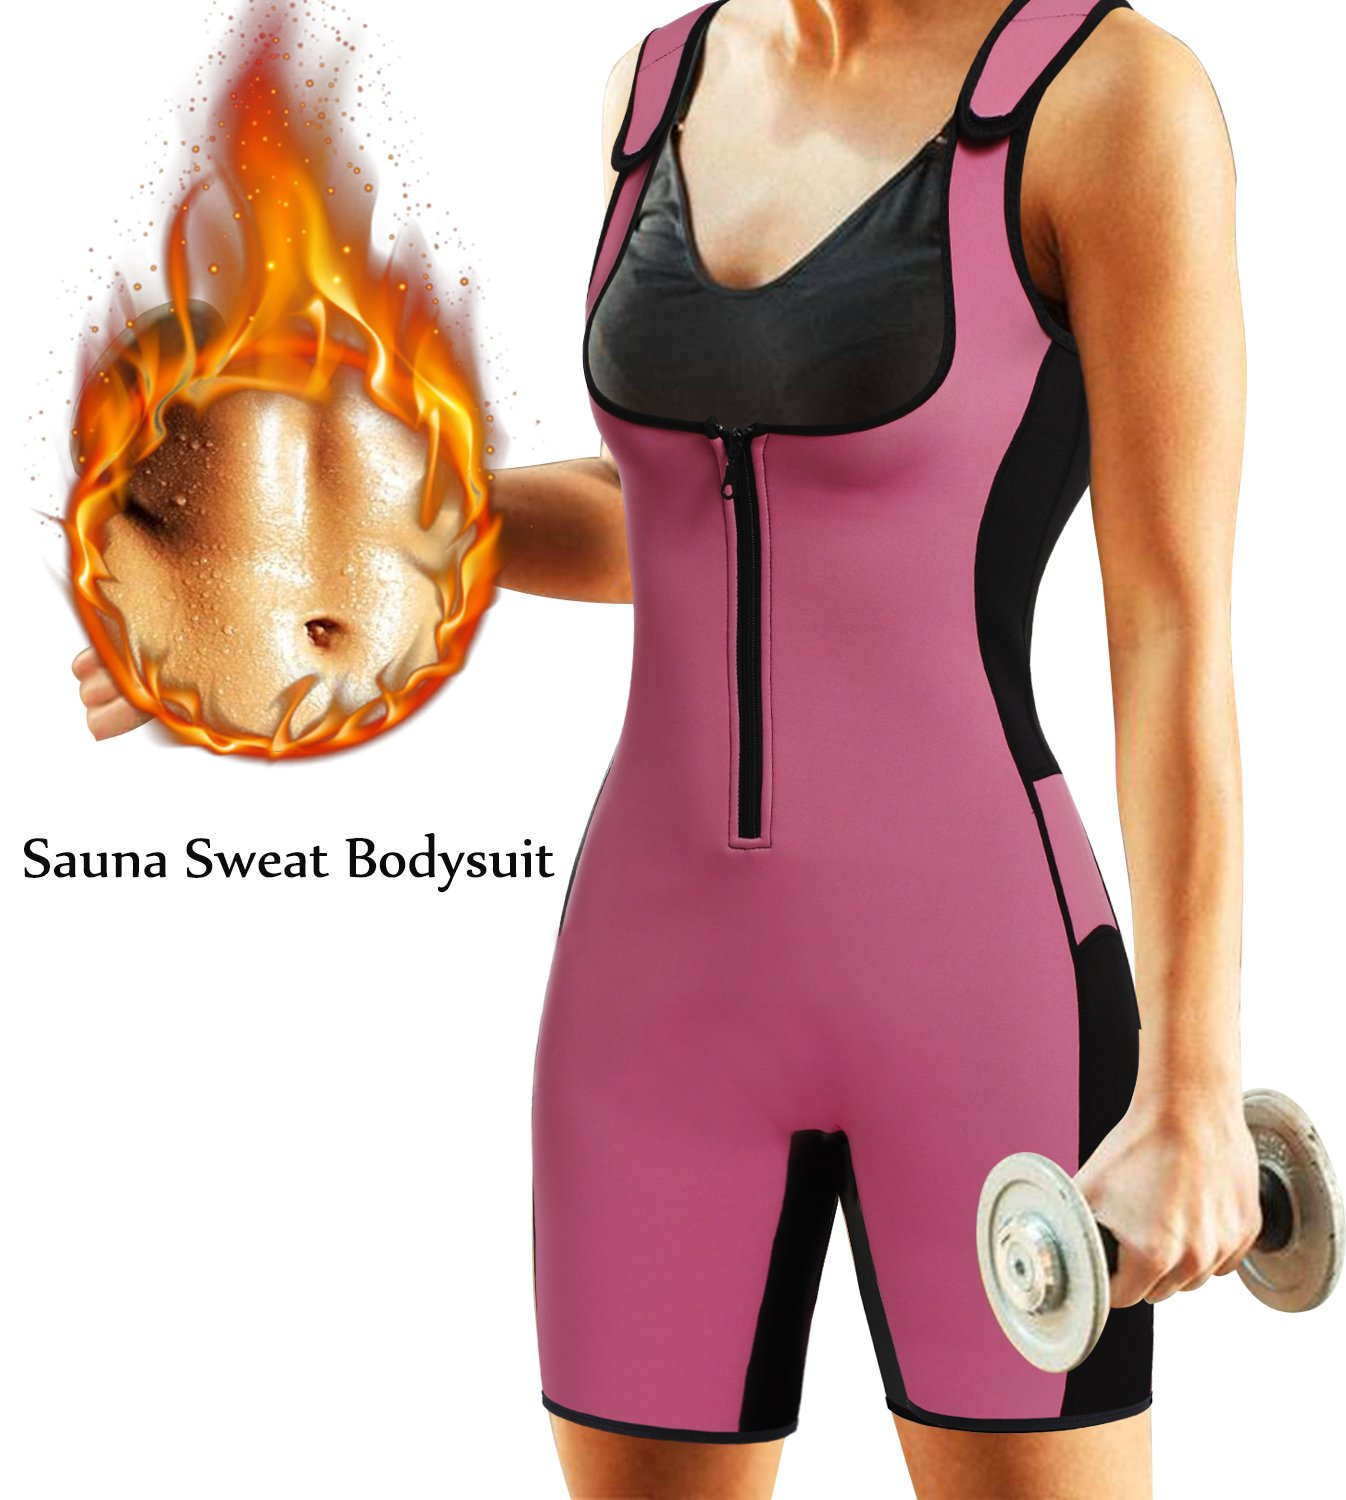 BRABIC Women's Full Body Shapewear Sport Sweat Neoprene Suit,Waist Trainer Bodysuit with Adjustable Straps for Weight Loss (S, Pink Sweat Sauna Suit)